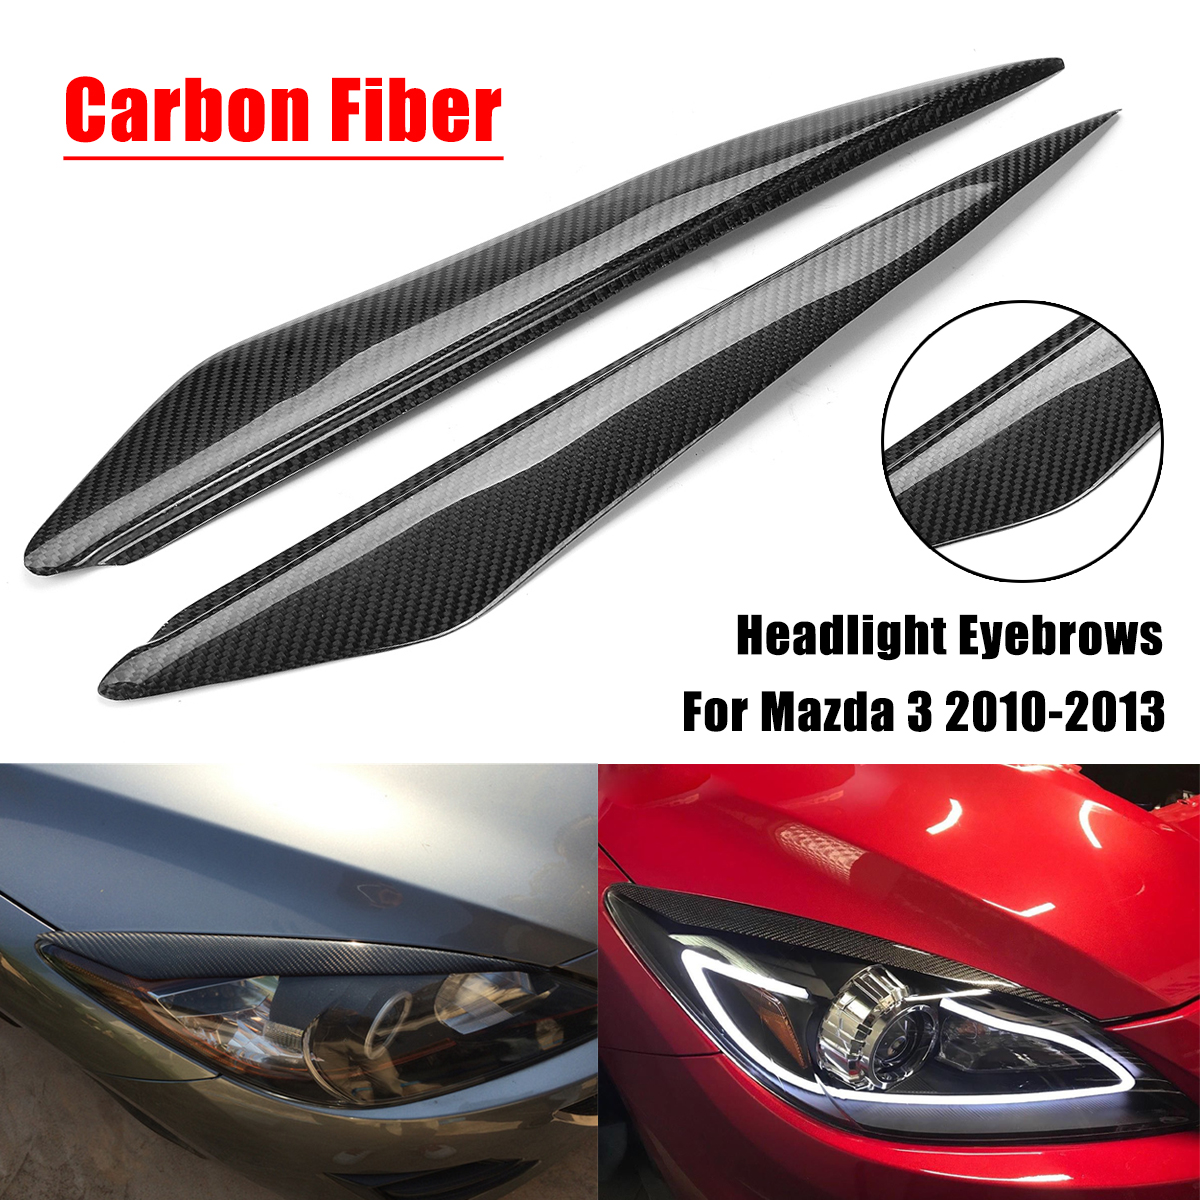 1Pair Carbon Fiber Headlight Eyebrows Cover Eyelids Trim for Mazda 3 2010 2013 Car Styling for Front Headlamp